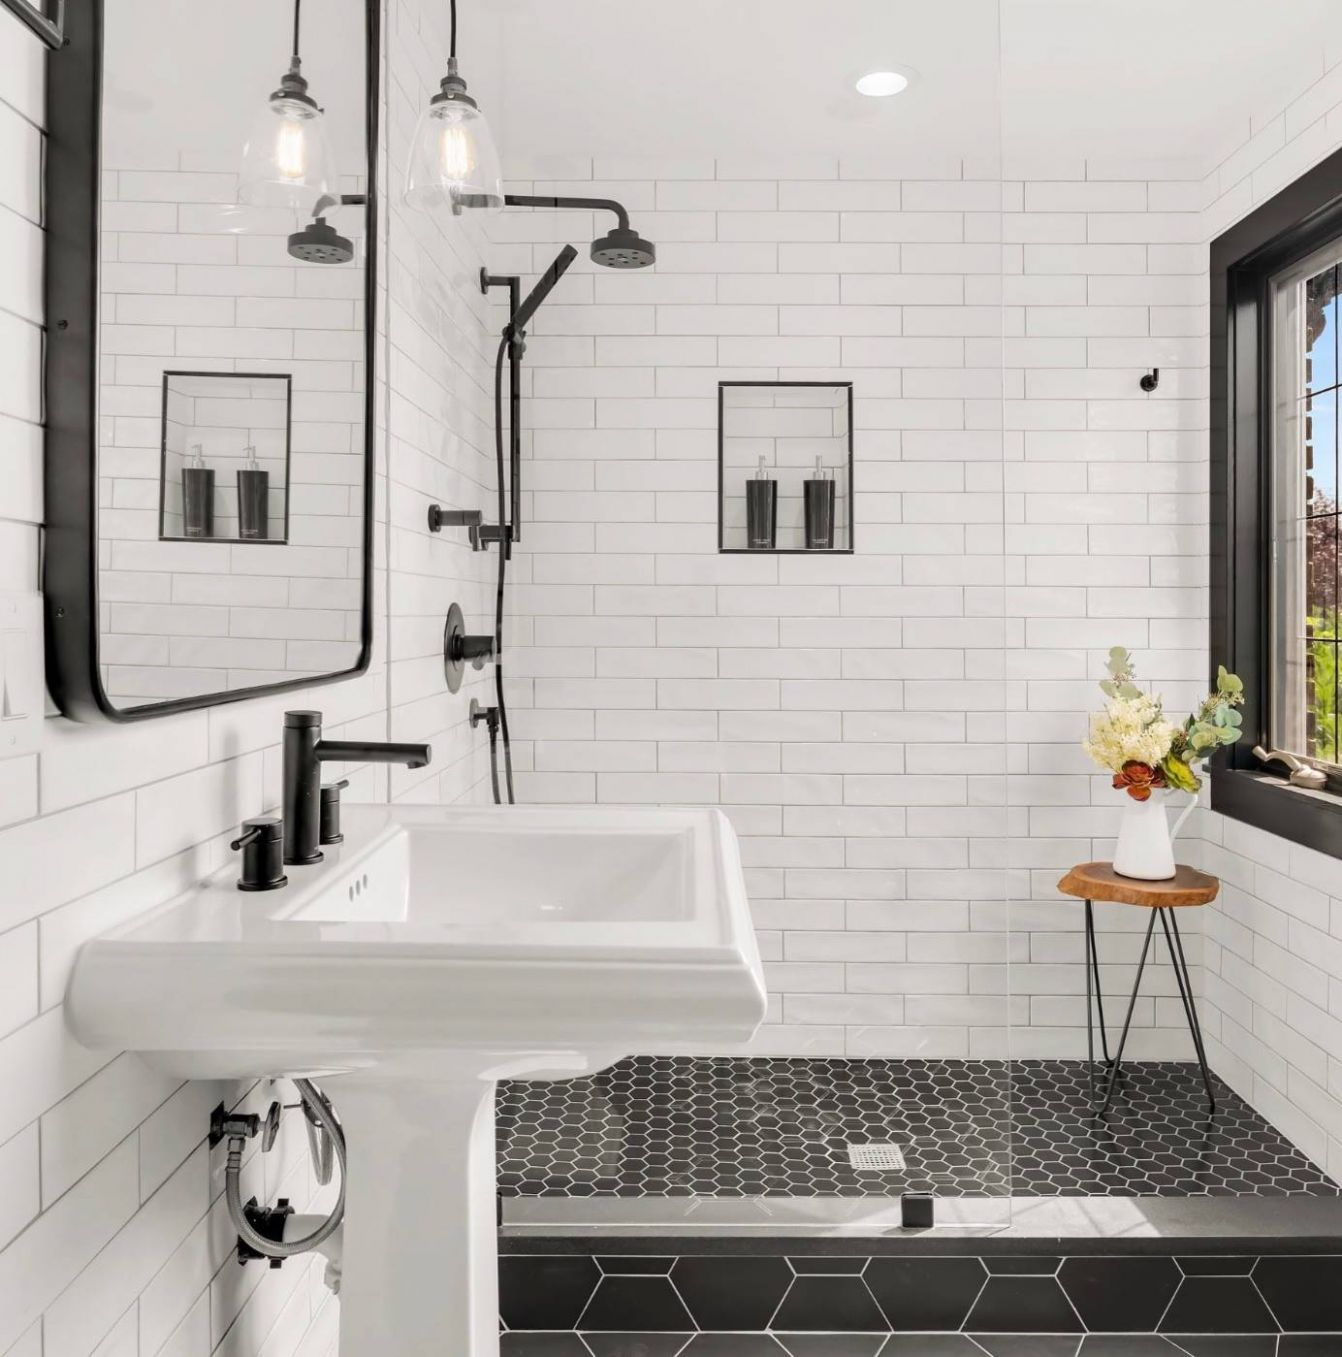 11 Beautiful Small Bathroom Pictures & Ideas   Houzz